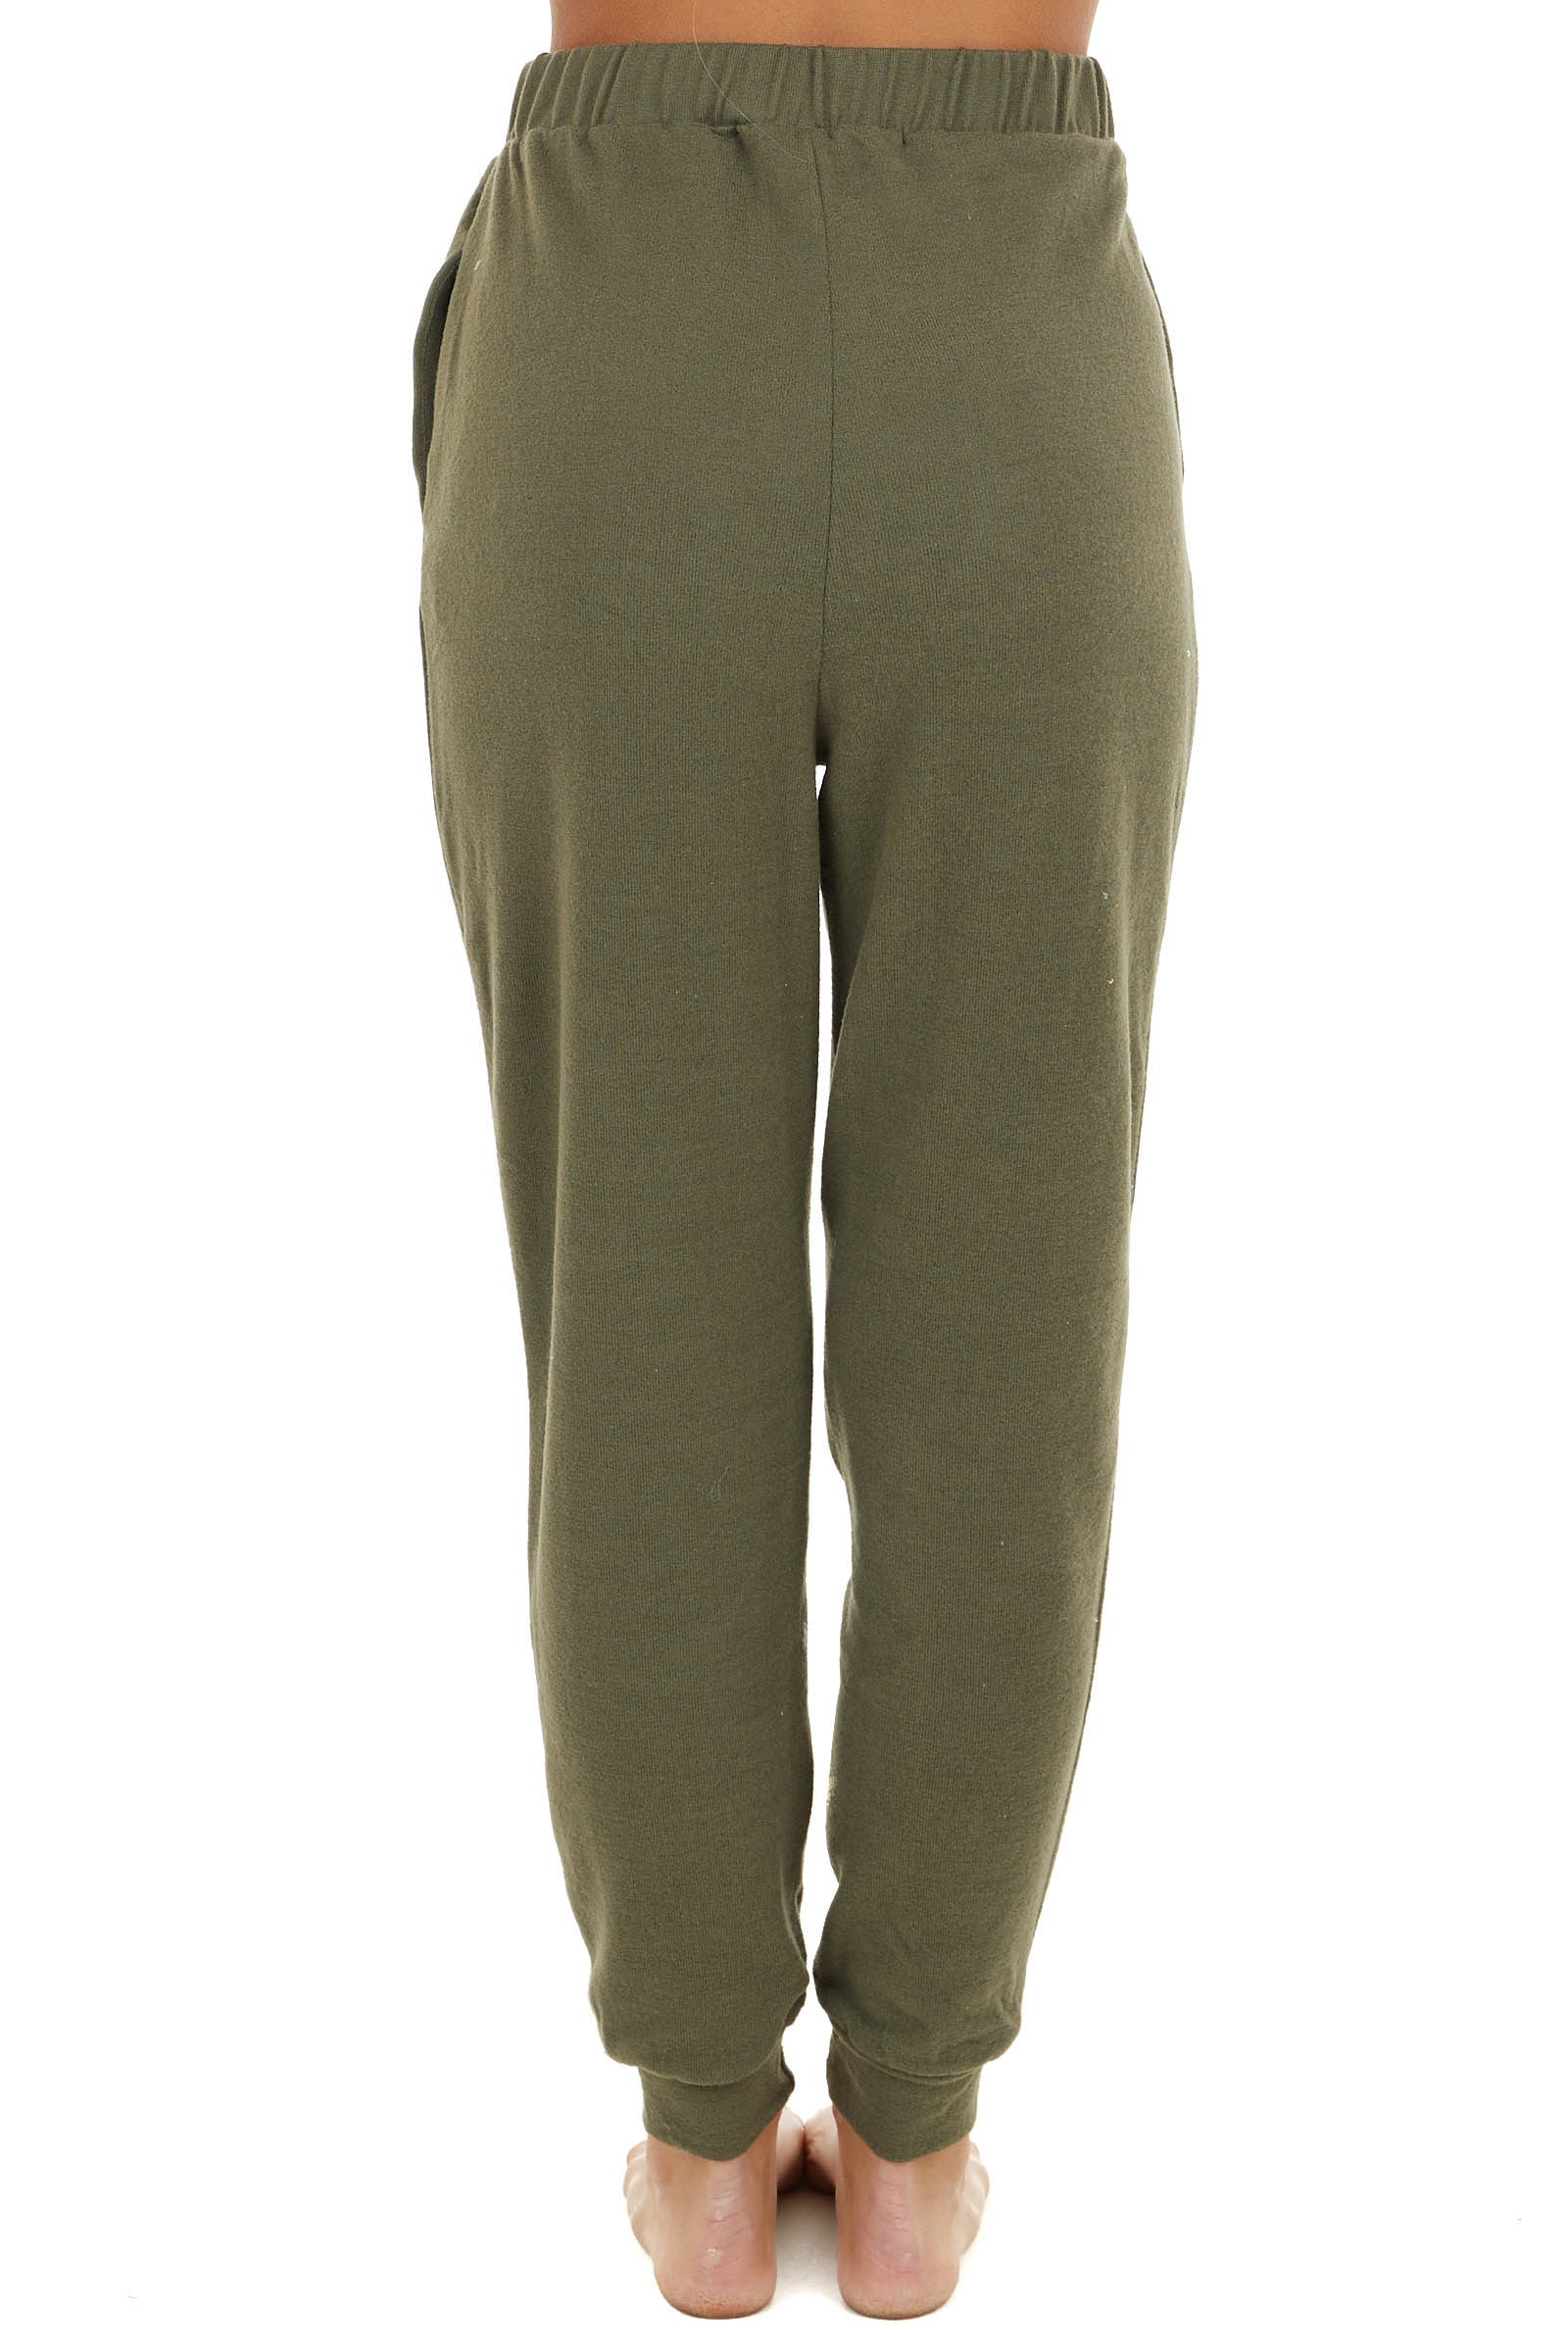 Olive Lightweight Stretchy Knit Joggers with Elastic Waist